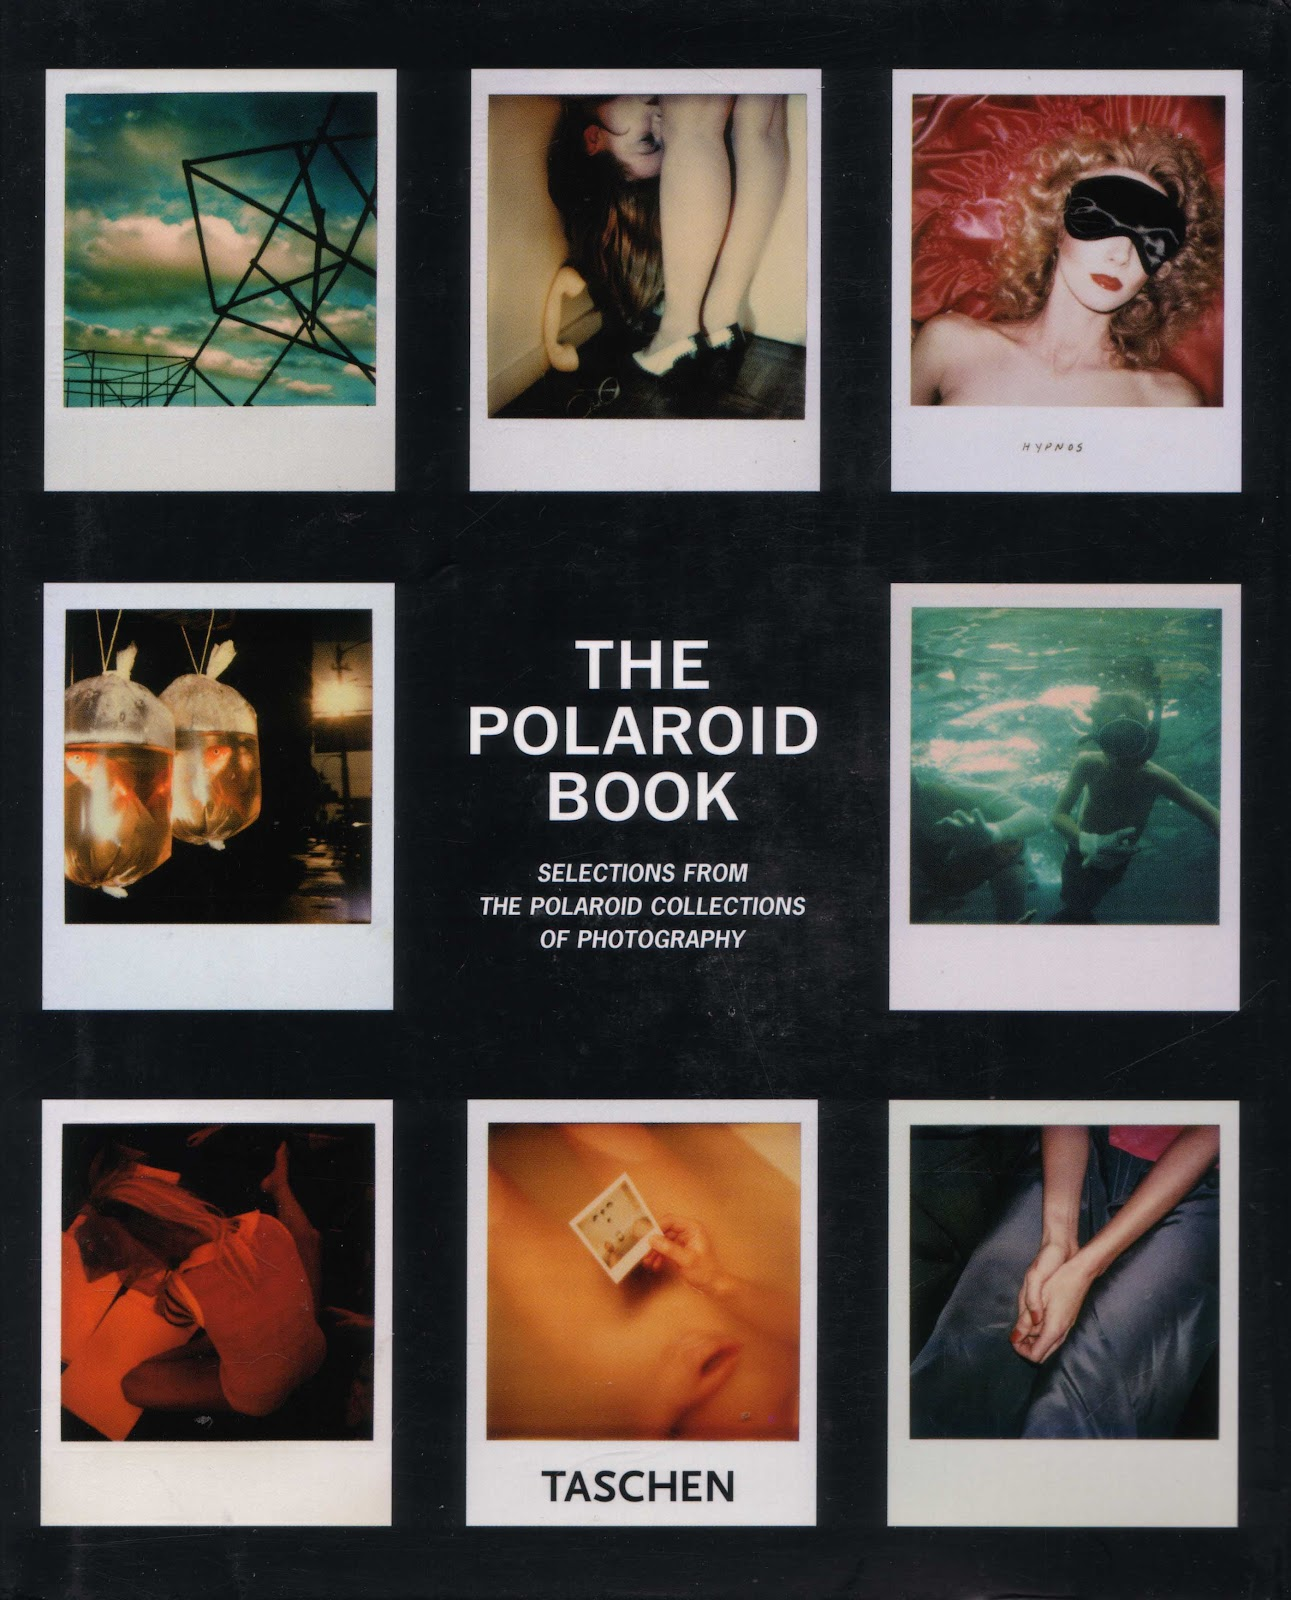 photographer essay video photo essay photographer kiripi katembo  huc gabet the polaroid book selection from the polaroid the polaroid book selection from the polaroid photographer